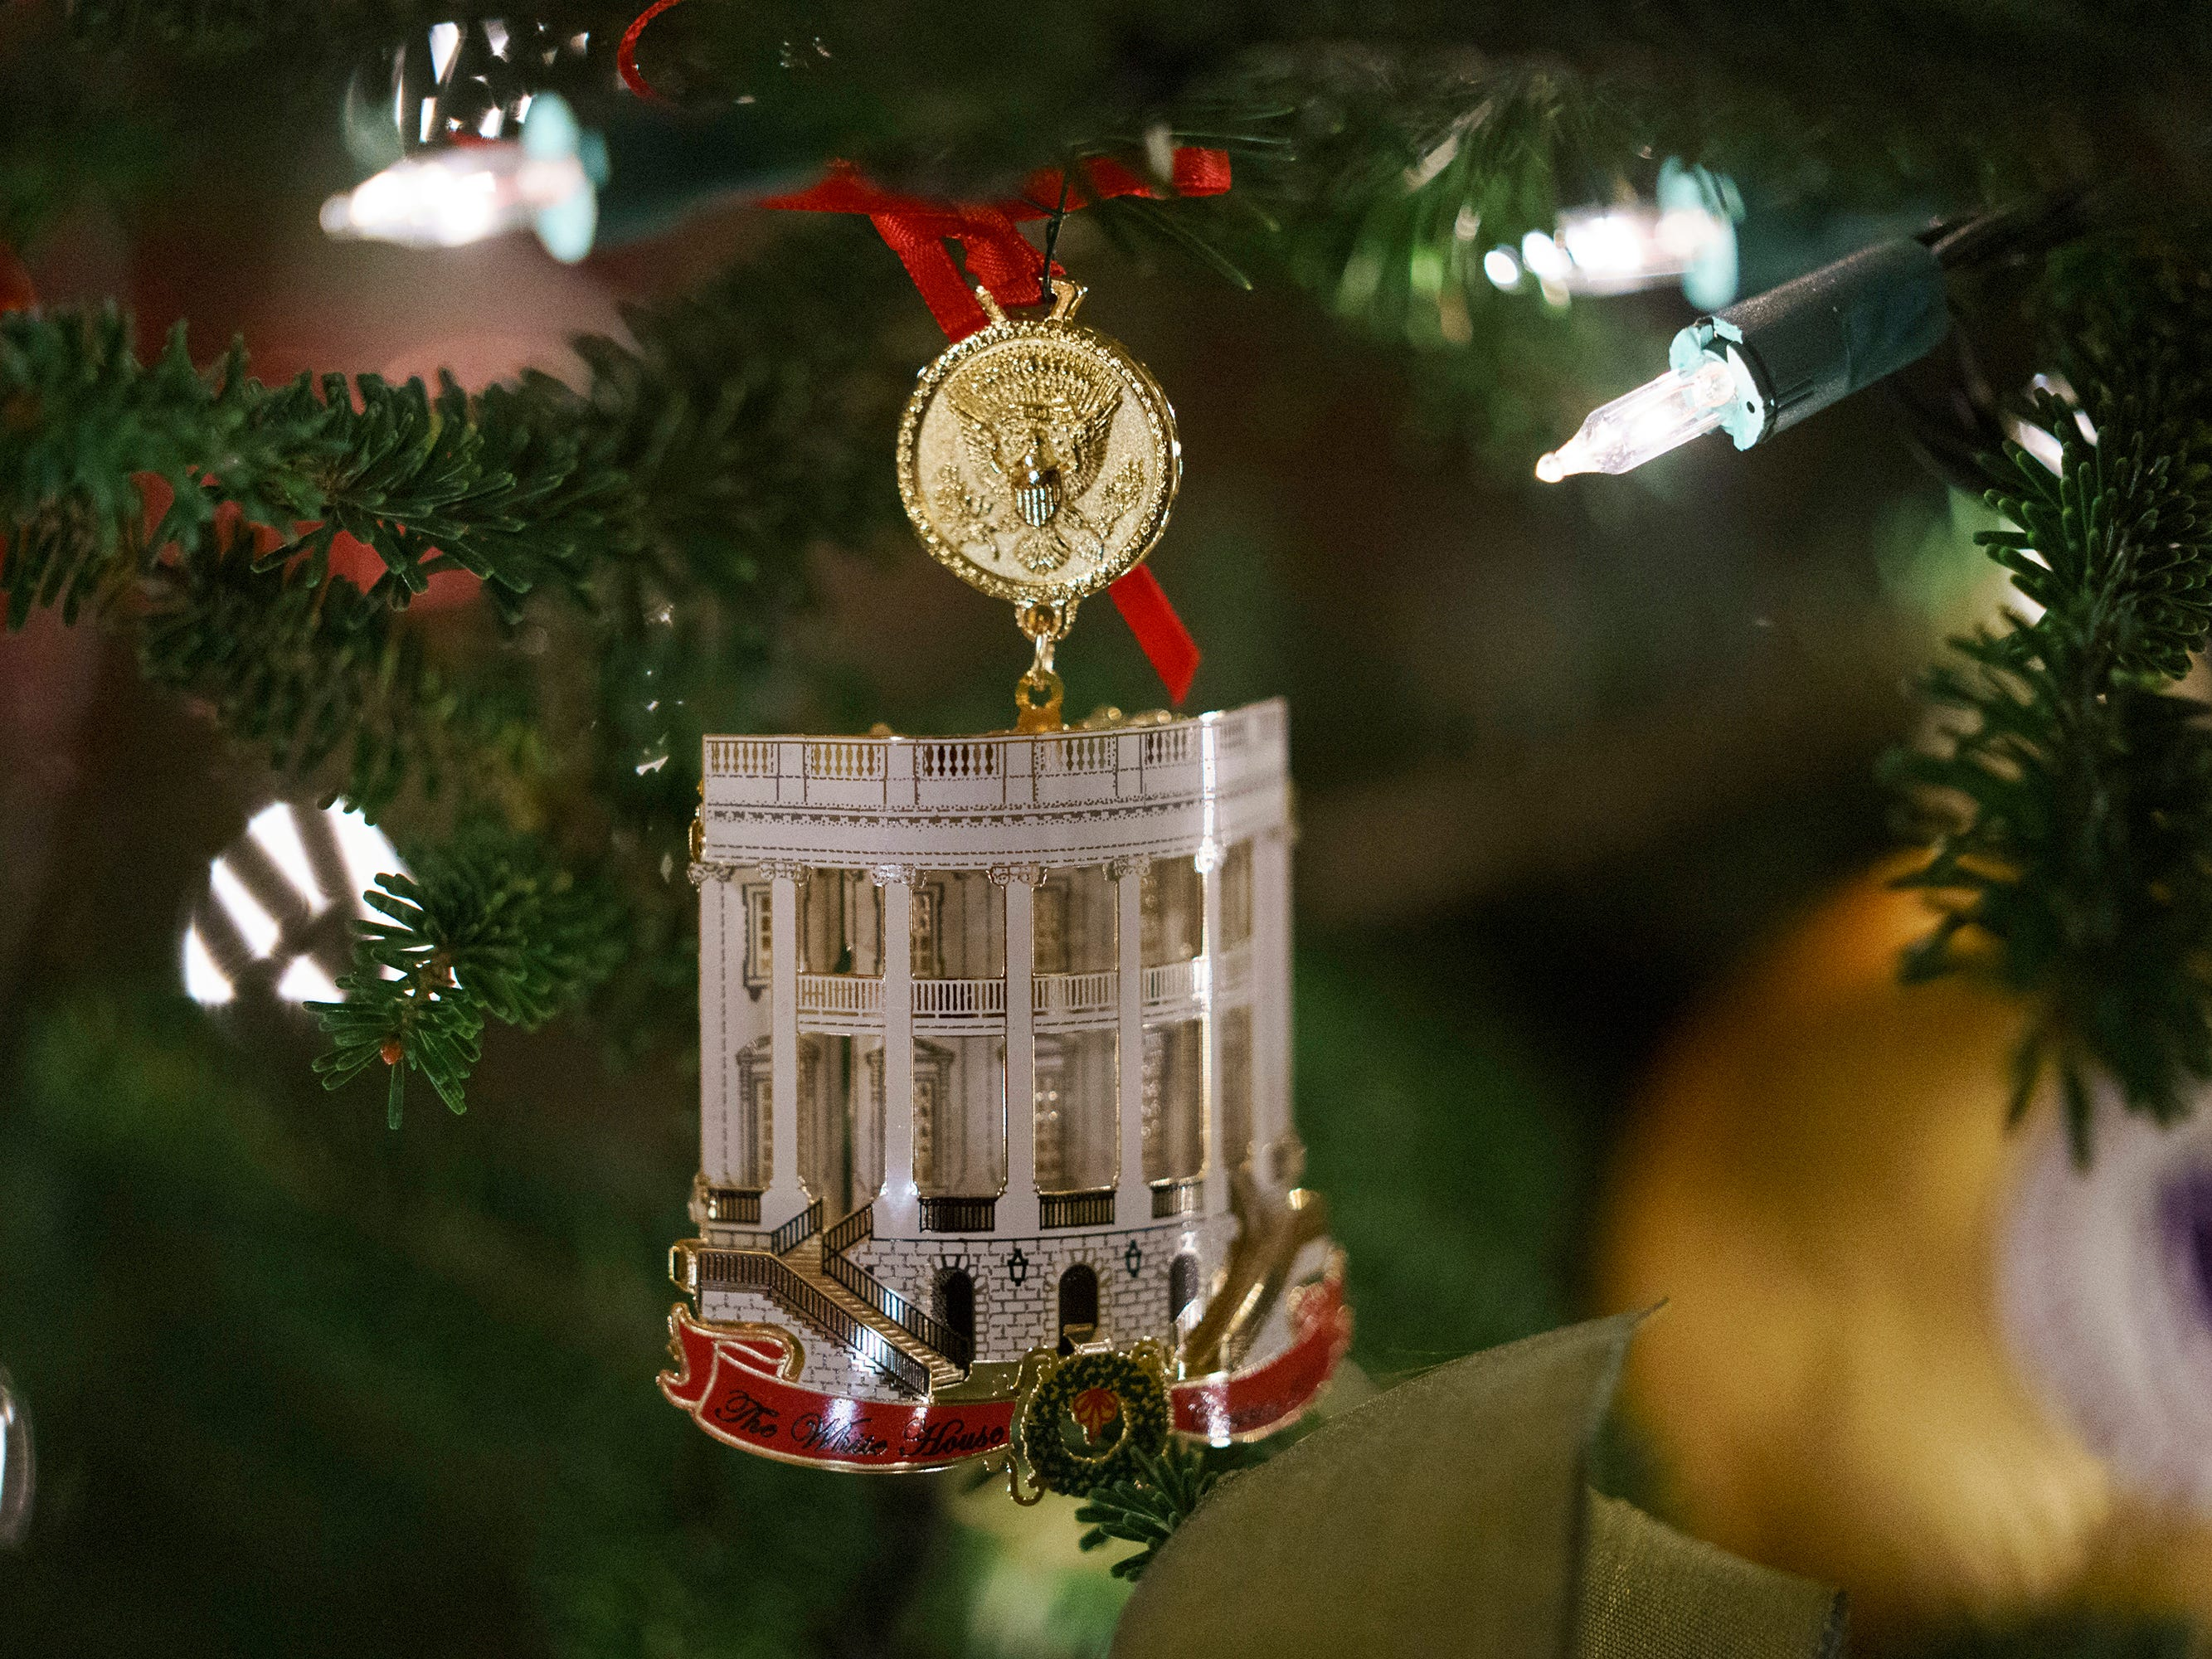 The Official 2018 White House Christmas Ornament is seen during the 2018 Christmas Press Preview at the White House in Washington, Monday, Nov. 26, 2018.